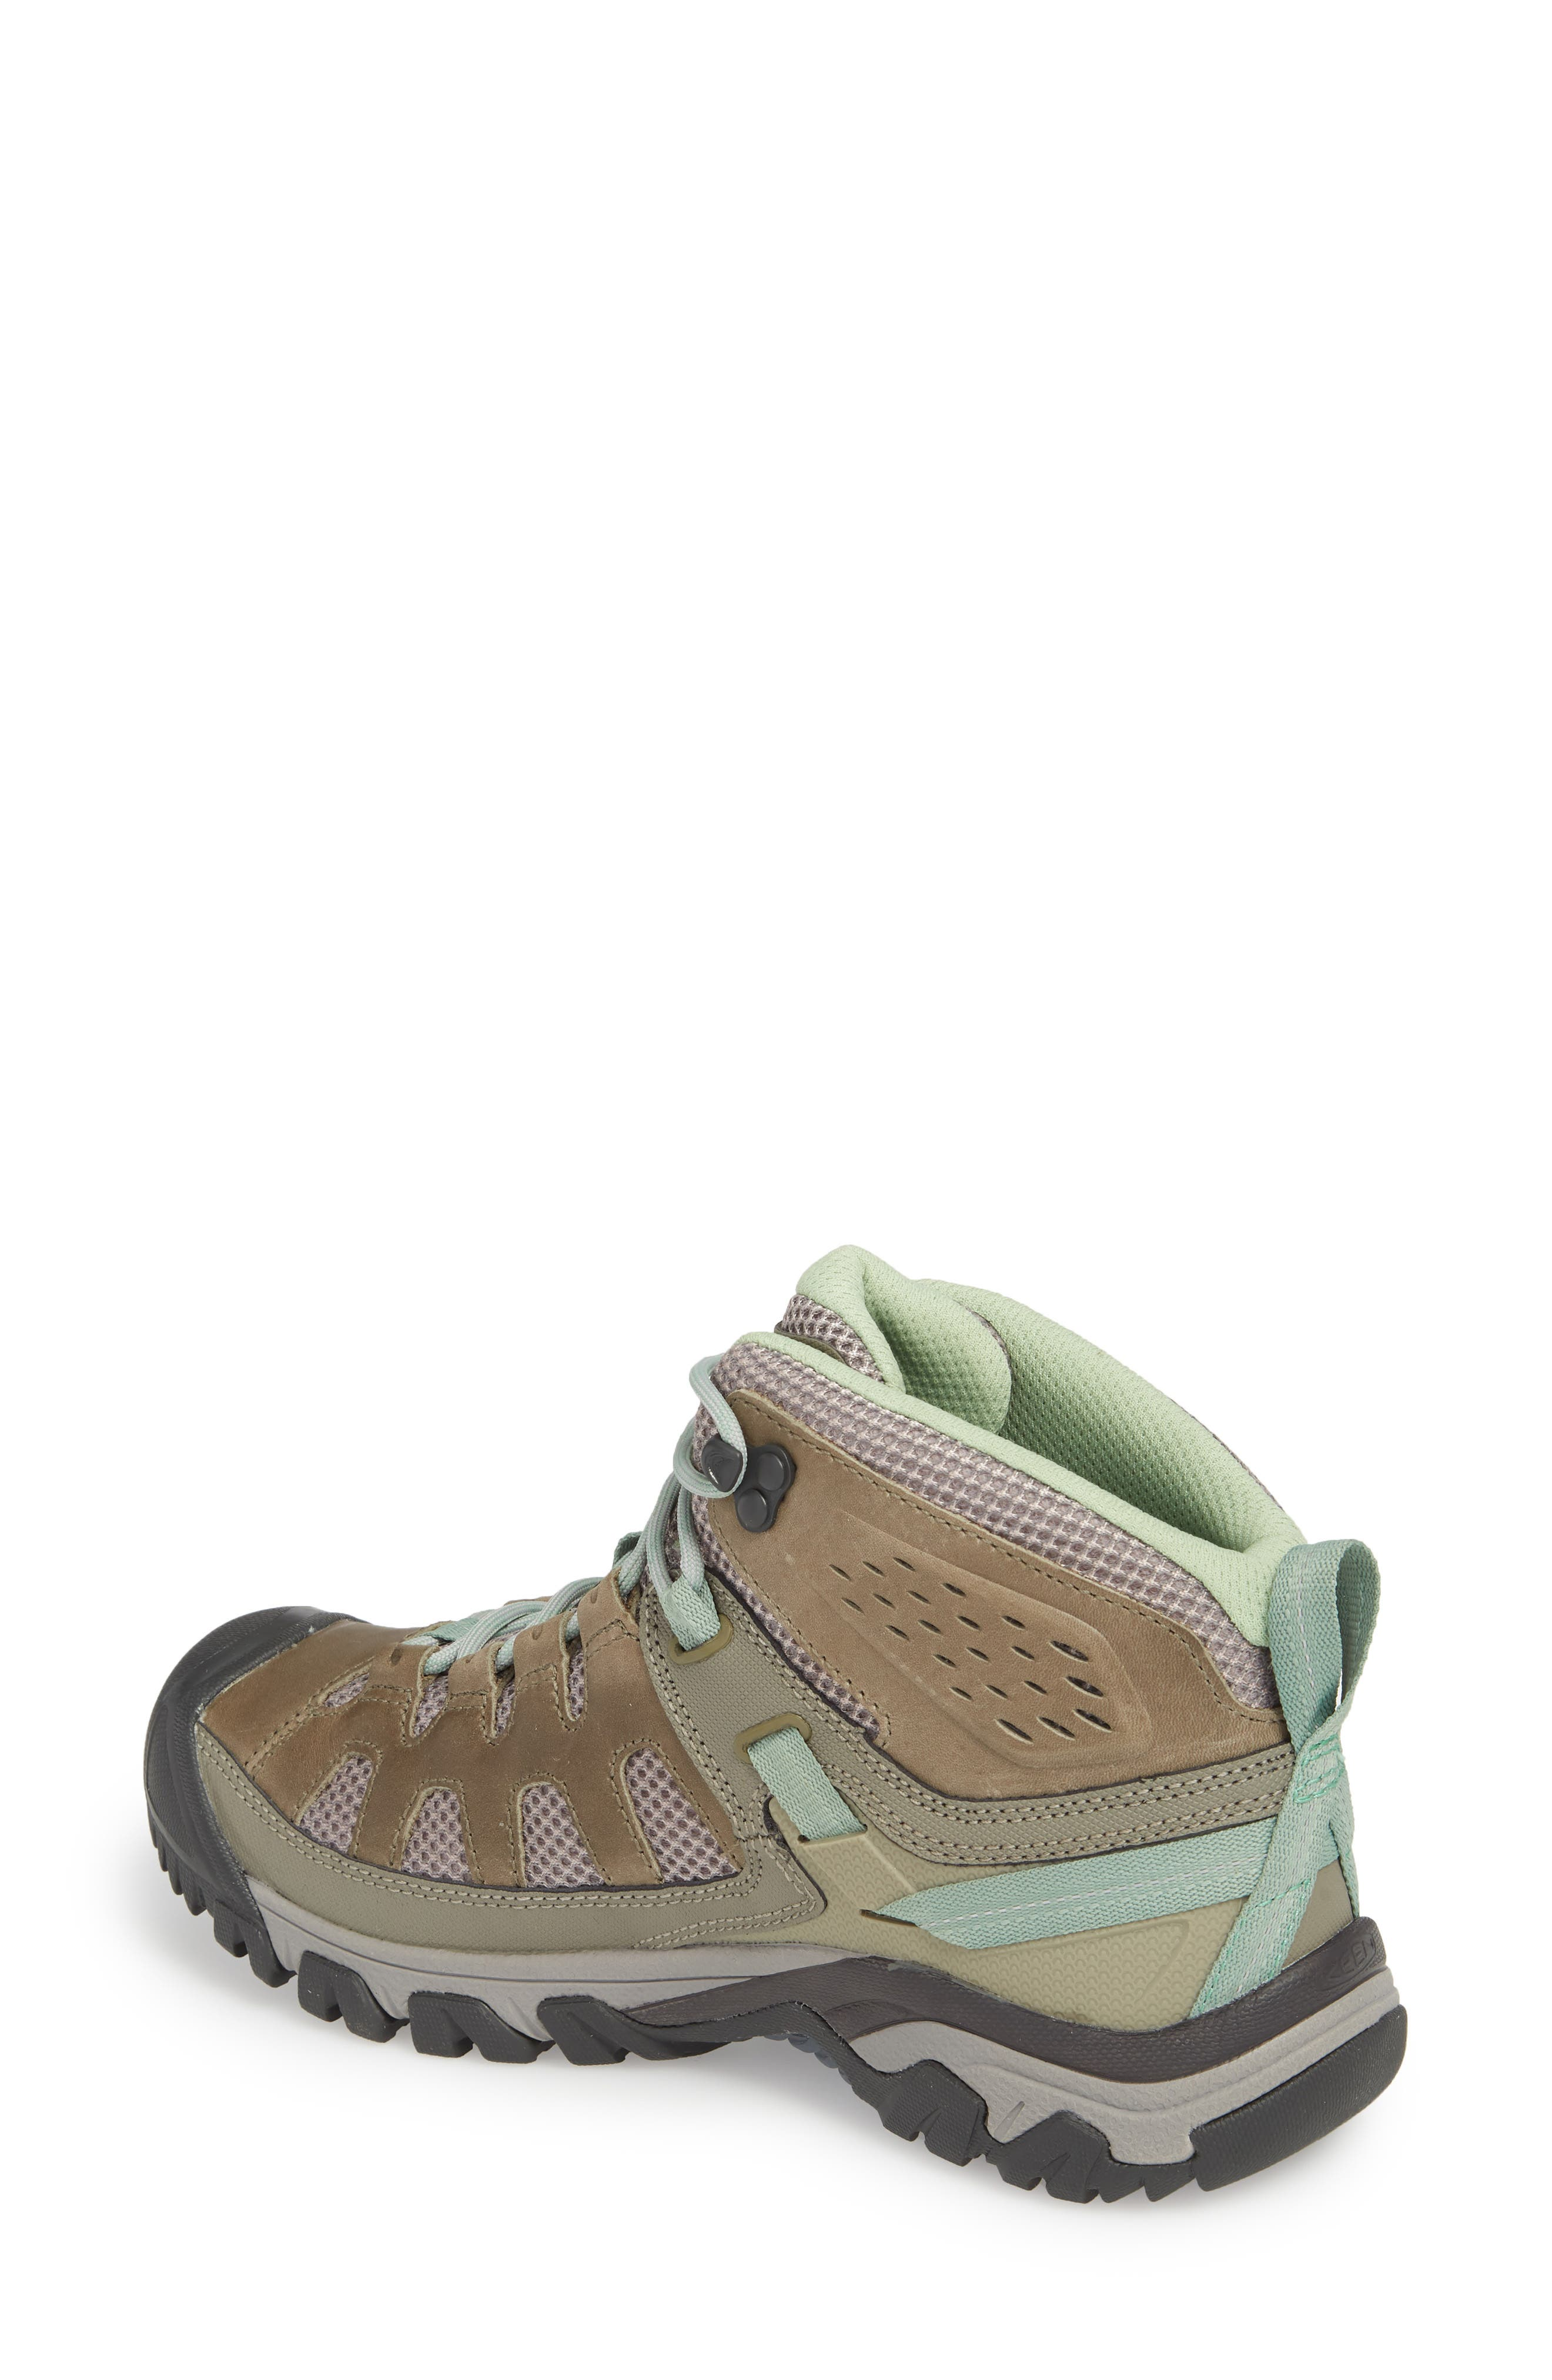 Targhee Vent Mid Hiking Shoe,                             Alternate thumbnail 2, color,                             Fumo/ Quiet Green Leather